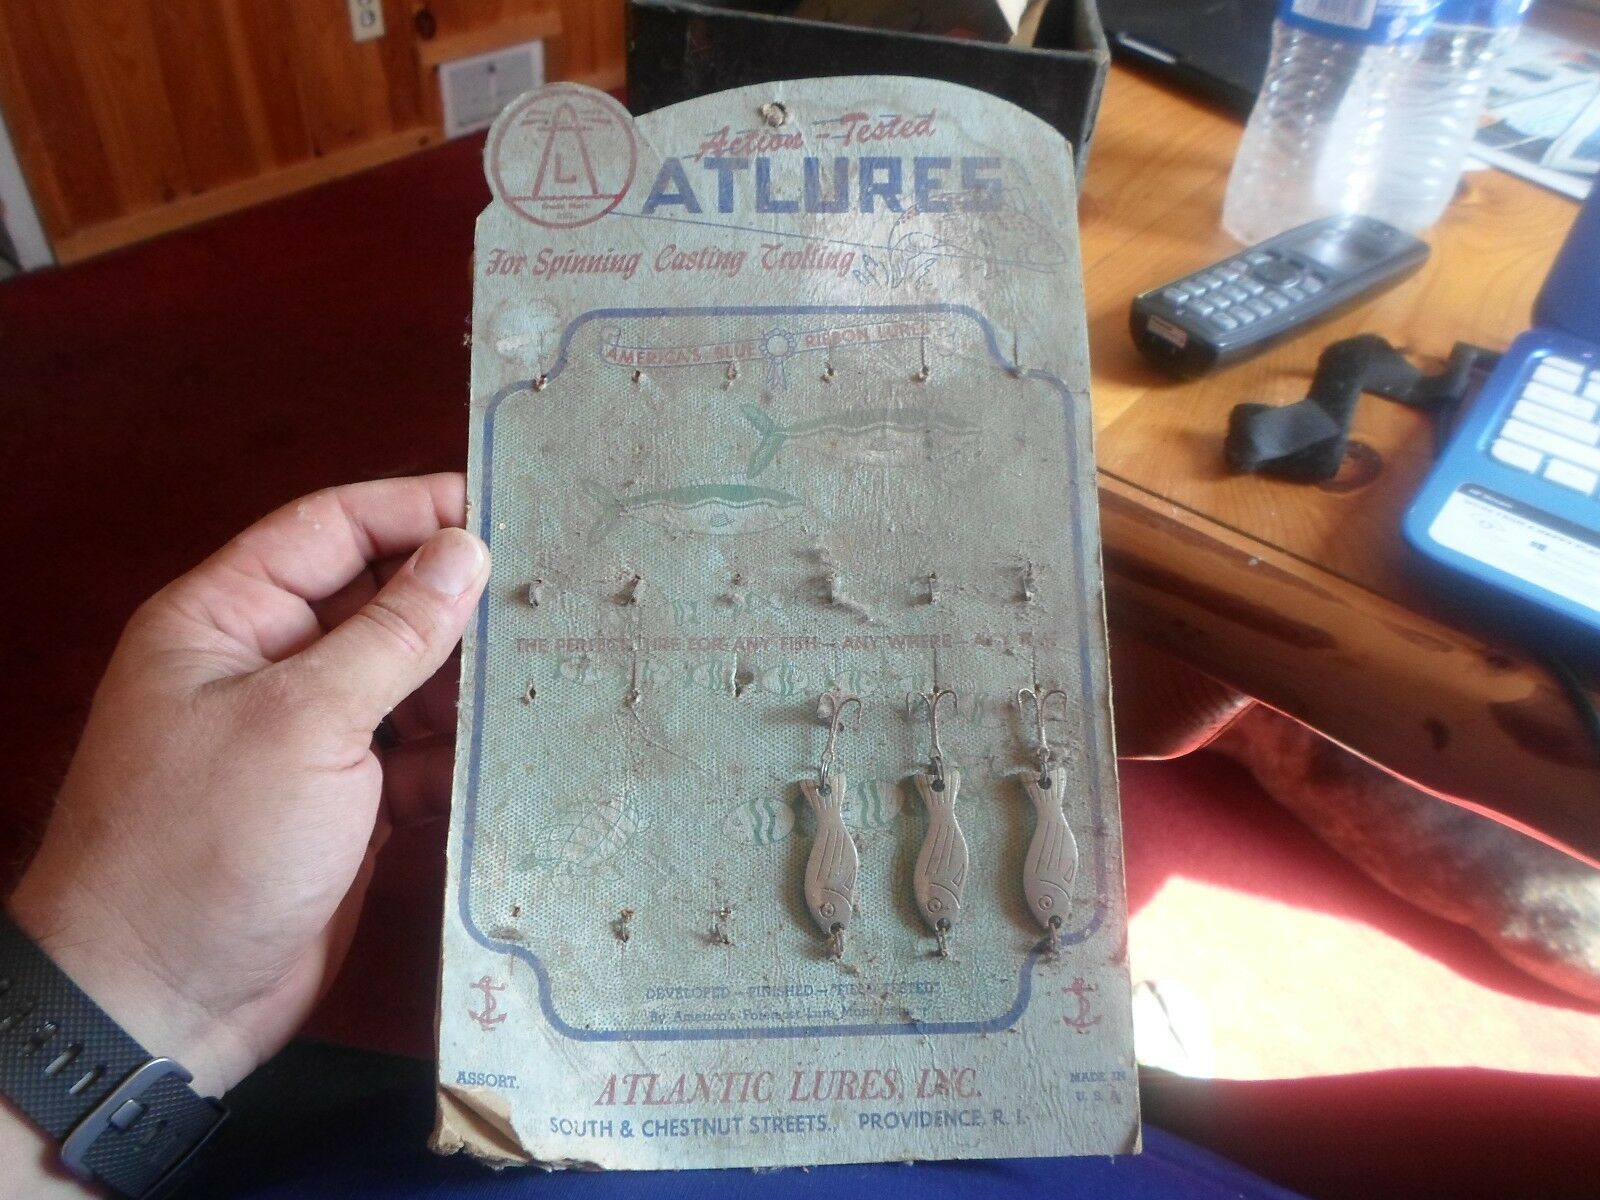 3 Vintage ATLURES Action Tested Atlantic Lures Inc metal fishing lure on card